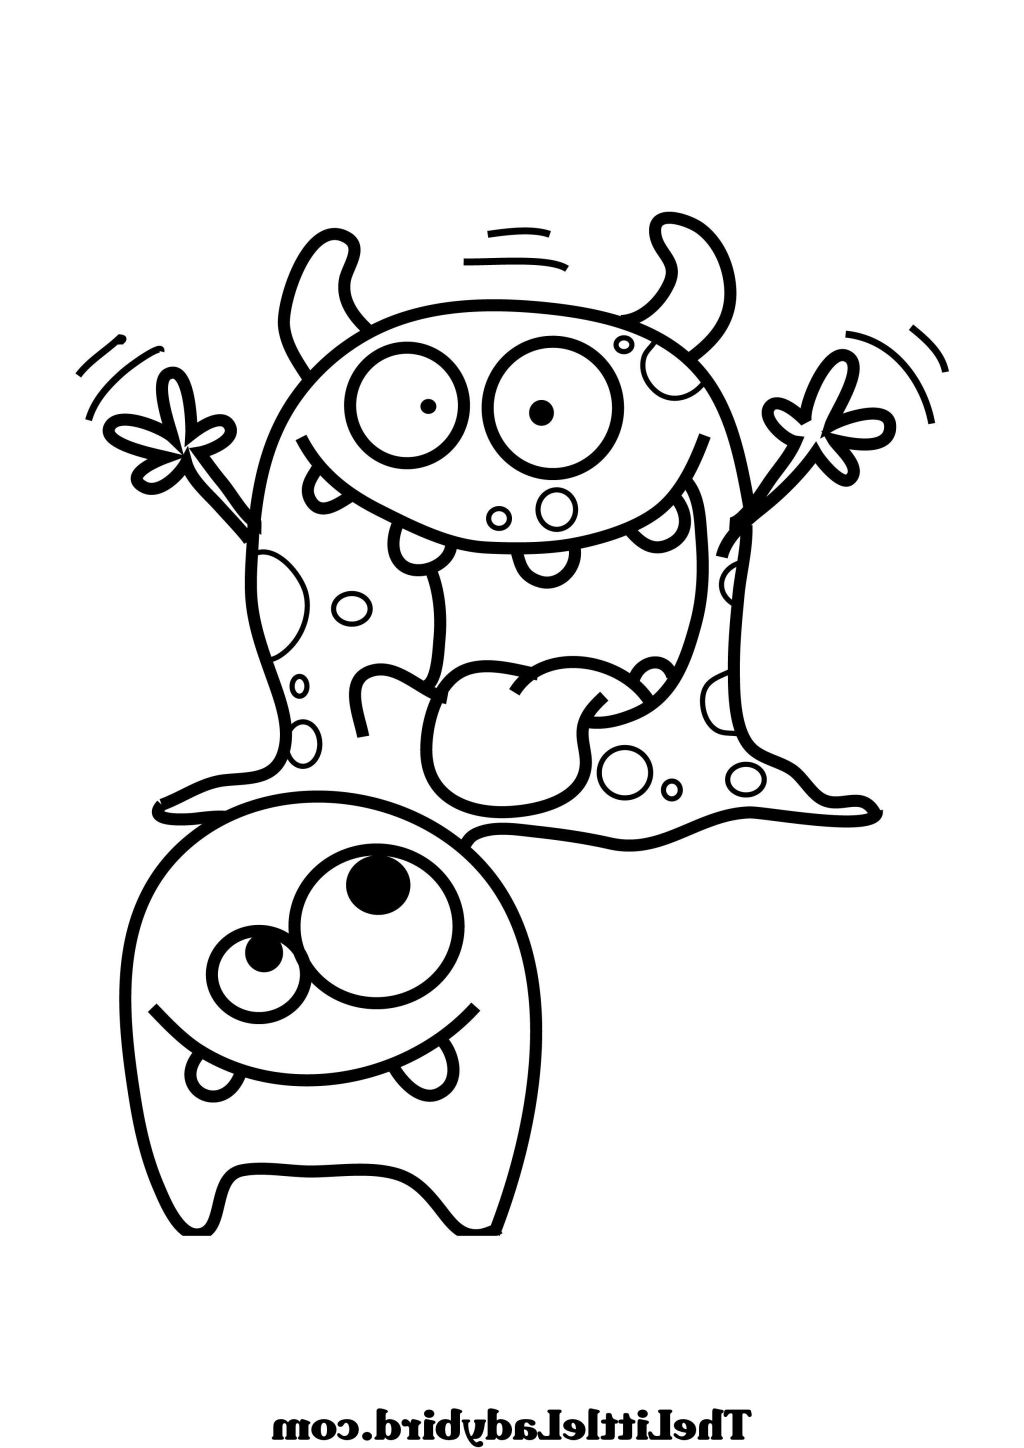 1024x1448 Printable Monster Coloring Pages F Monsters Little Cartoons